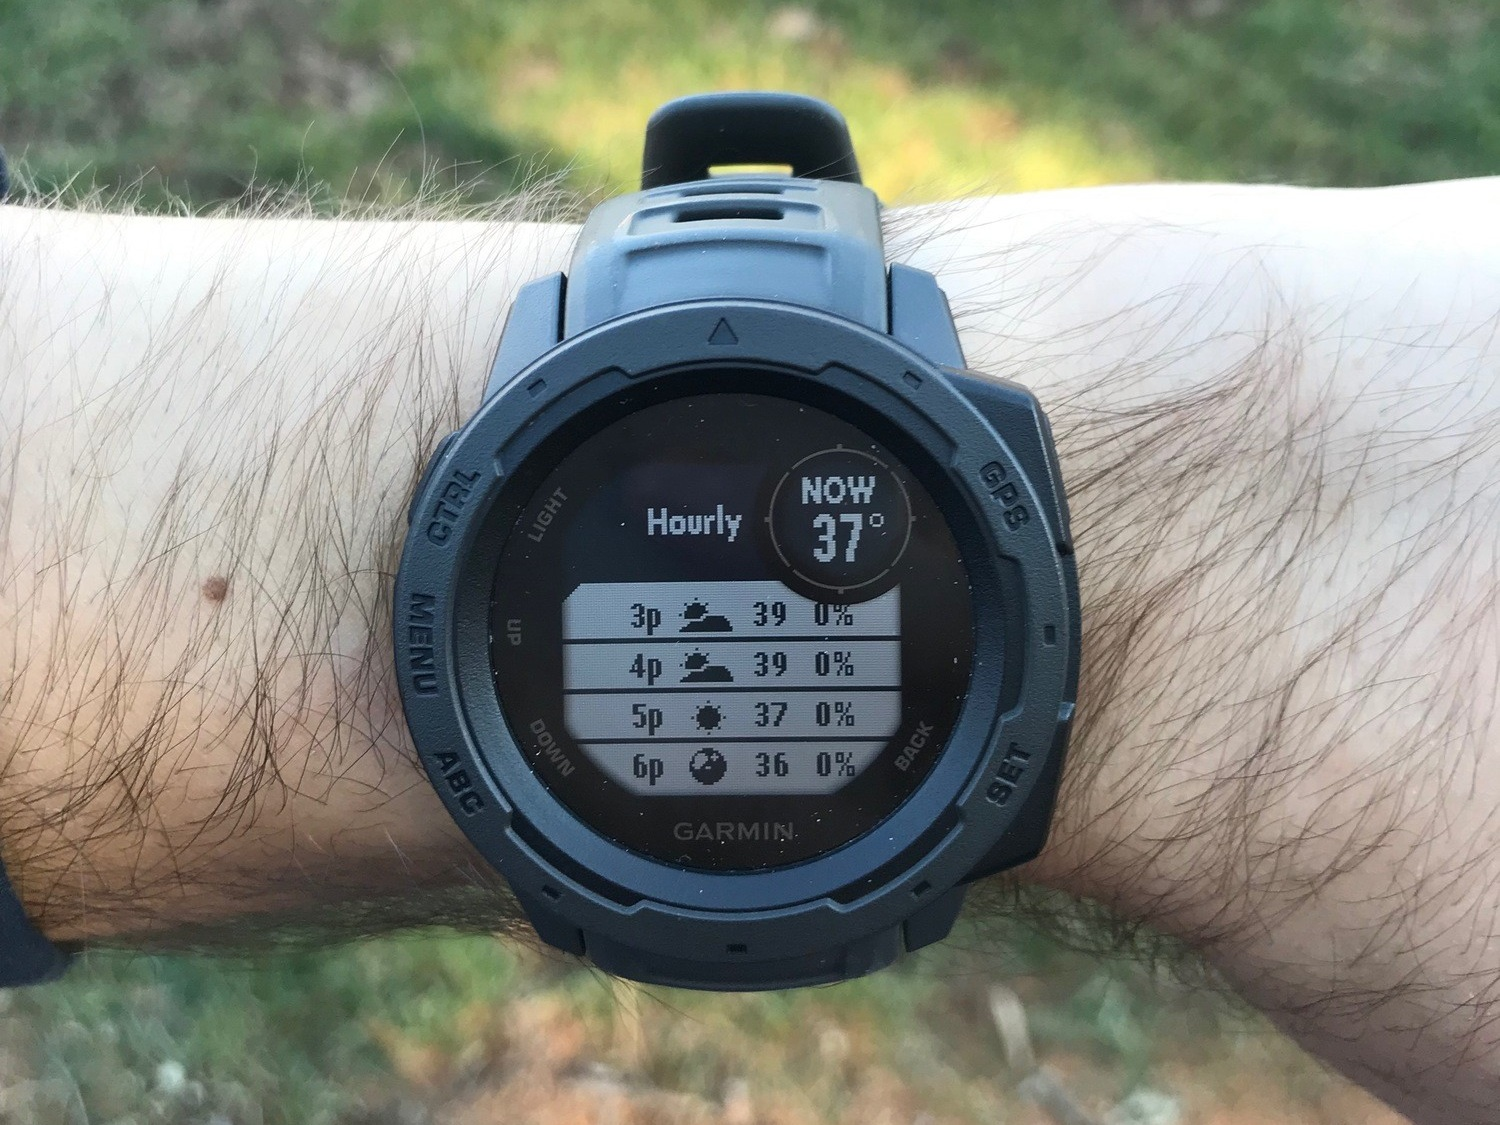 While tracking the weather isn't an essential aspect of a GPS watch, it sure is a nice perk.